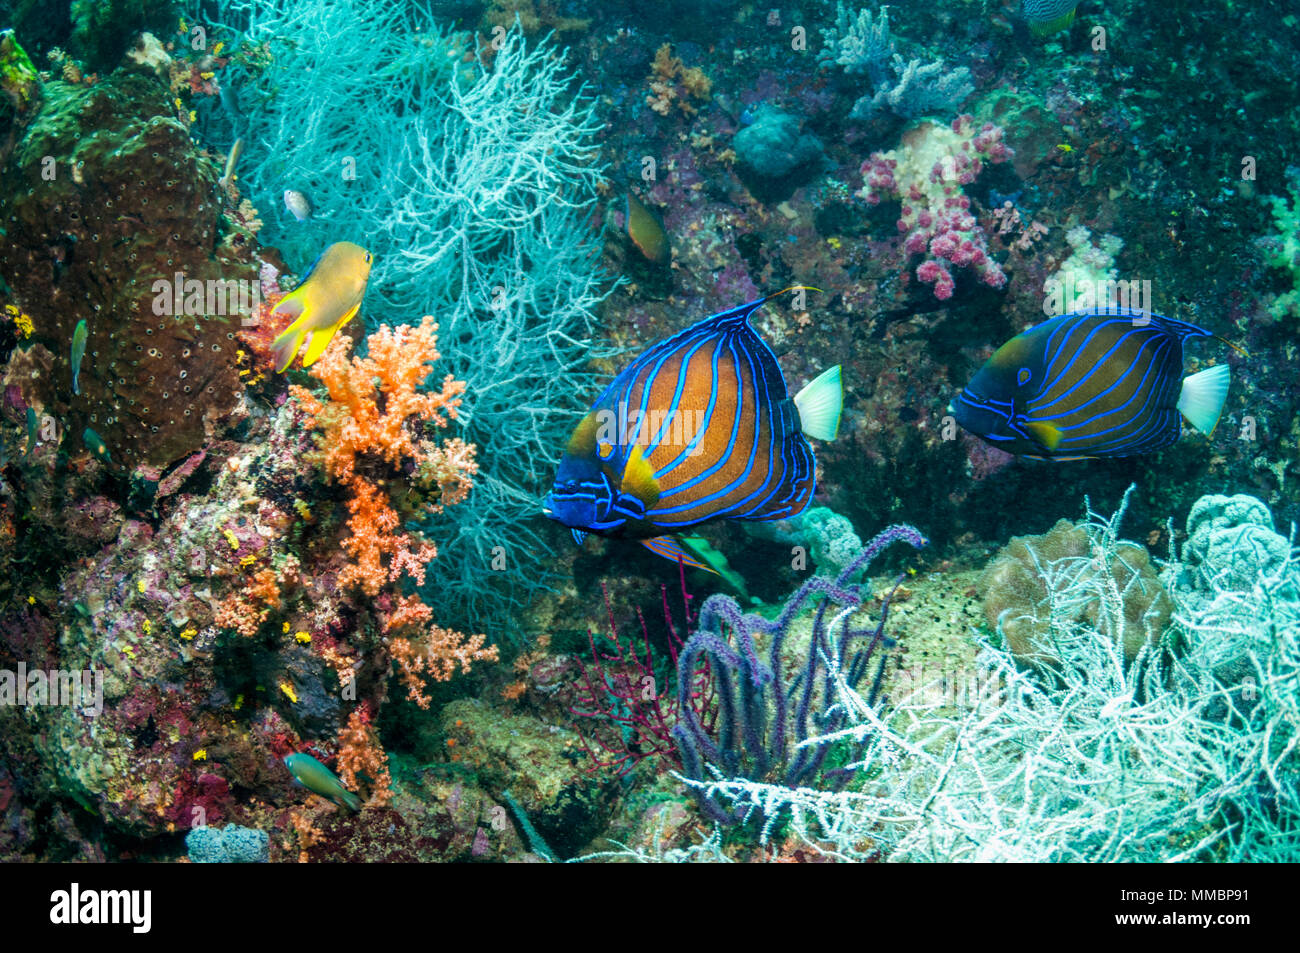 Blue-ringed angelfish [Pomacanthus annularis] pair swimming over coral reef with black coral.  West Papua, Indonesia. Stock Photo